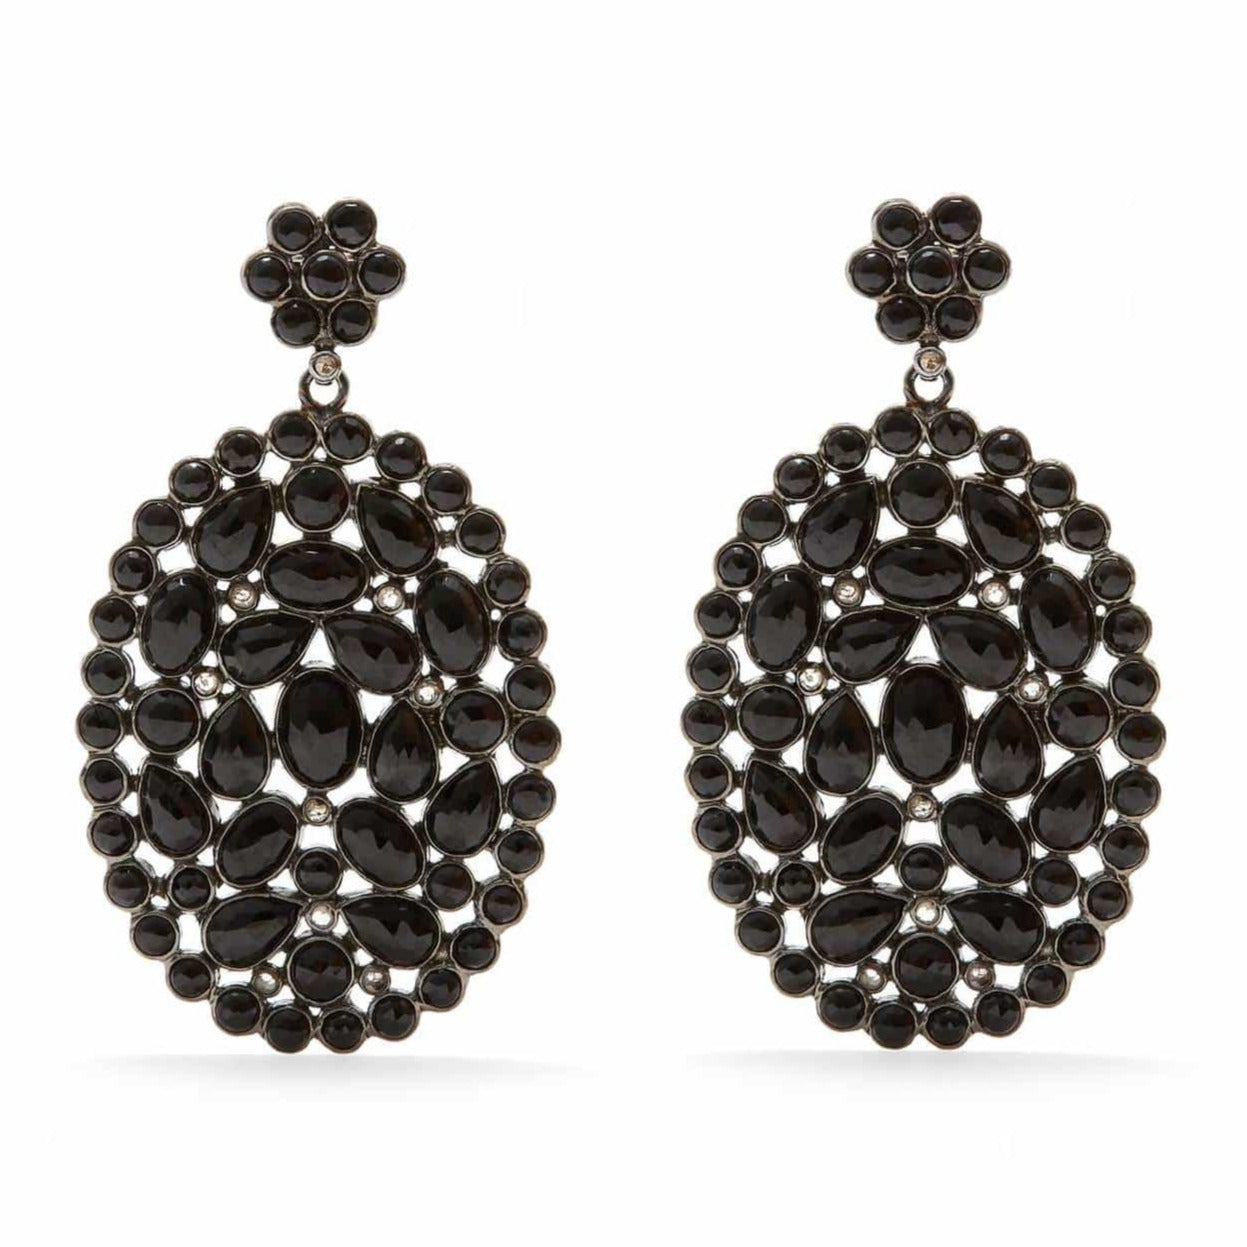 'Diaphanous' Black Spinel & Diamond Oval Earrings